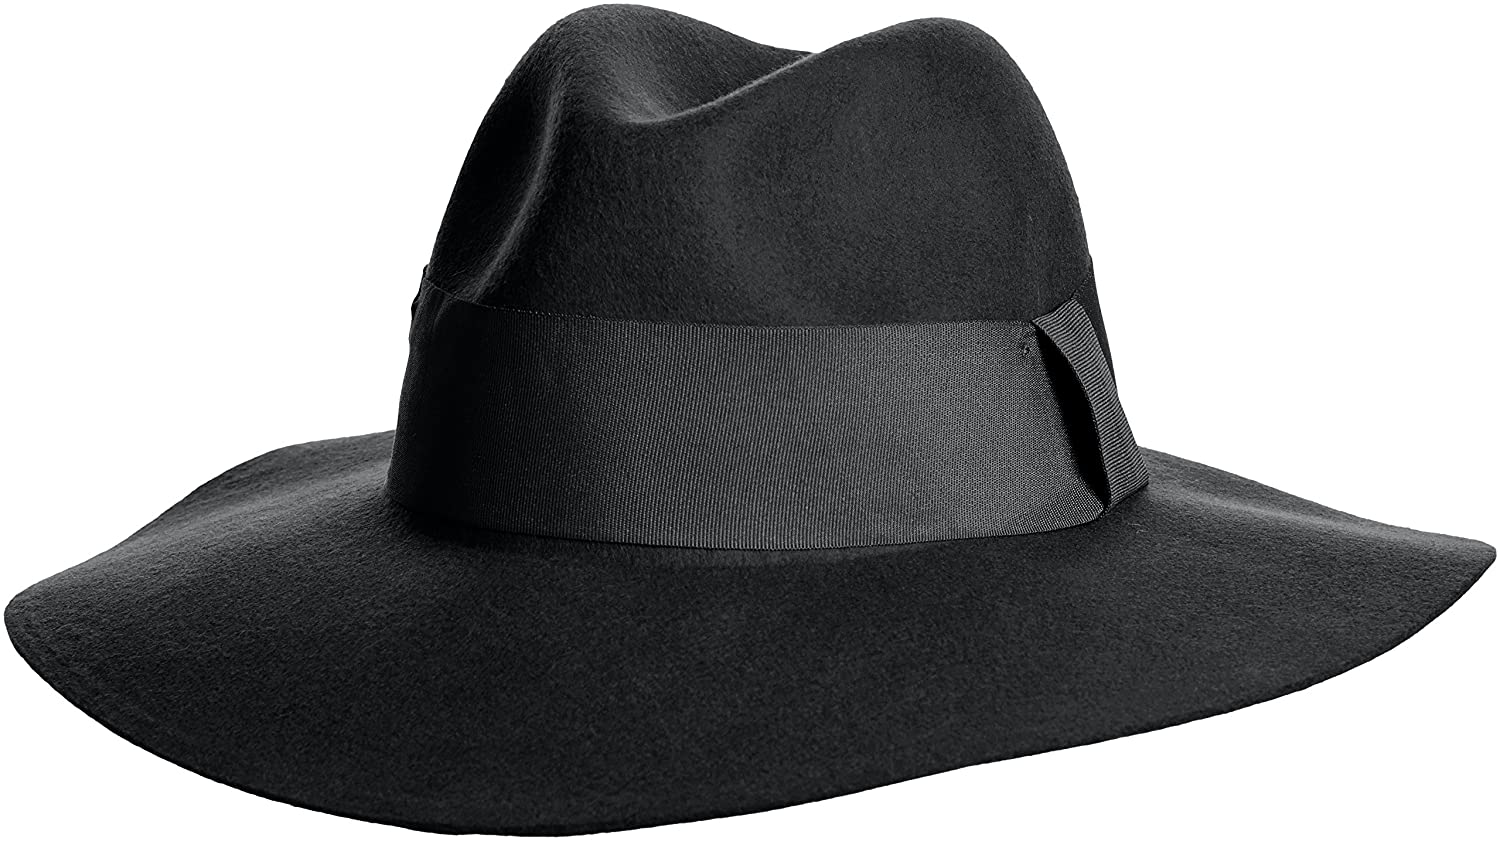 Amazon | (マウジー)MOUSSY wide brim hat 0108AK50-7990 BLK FREE | ハット 通販